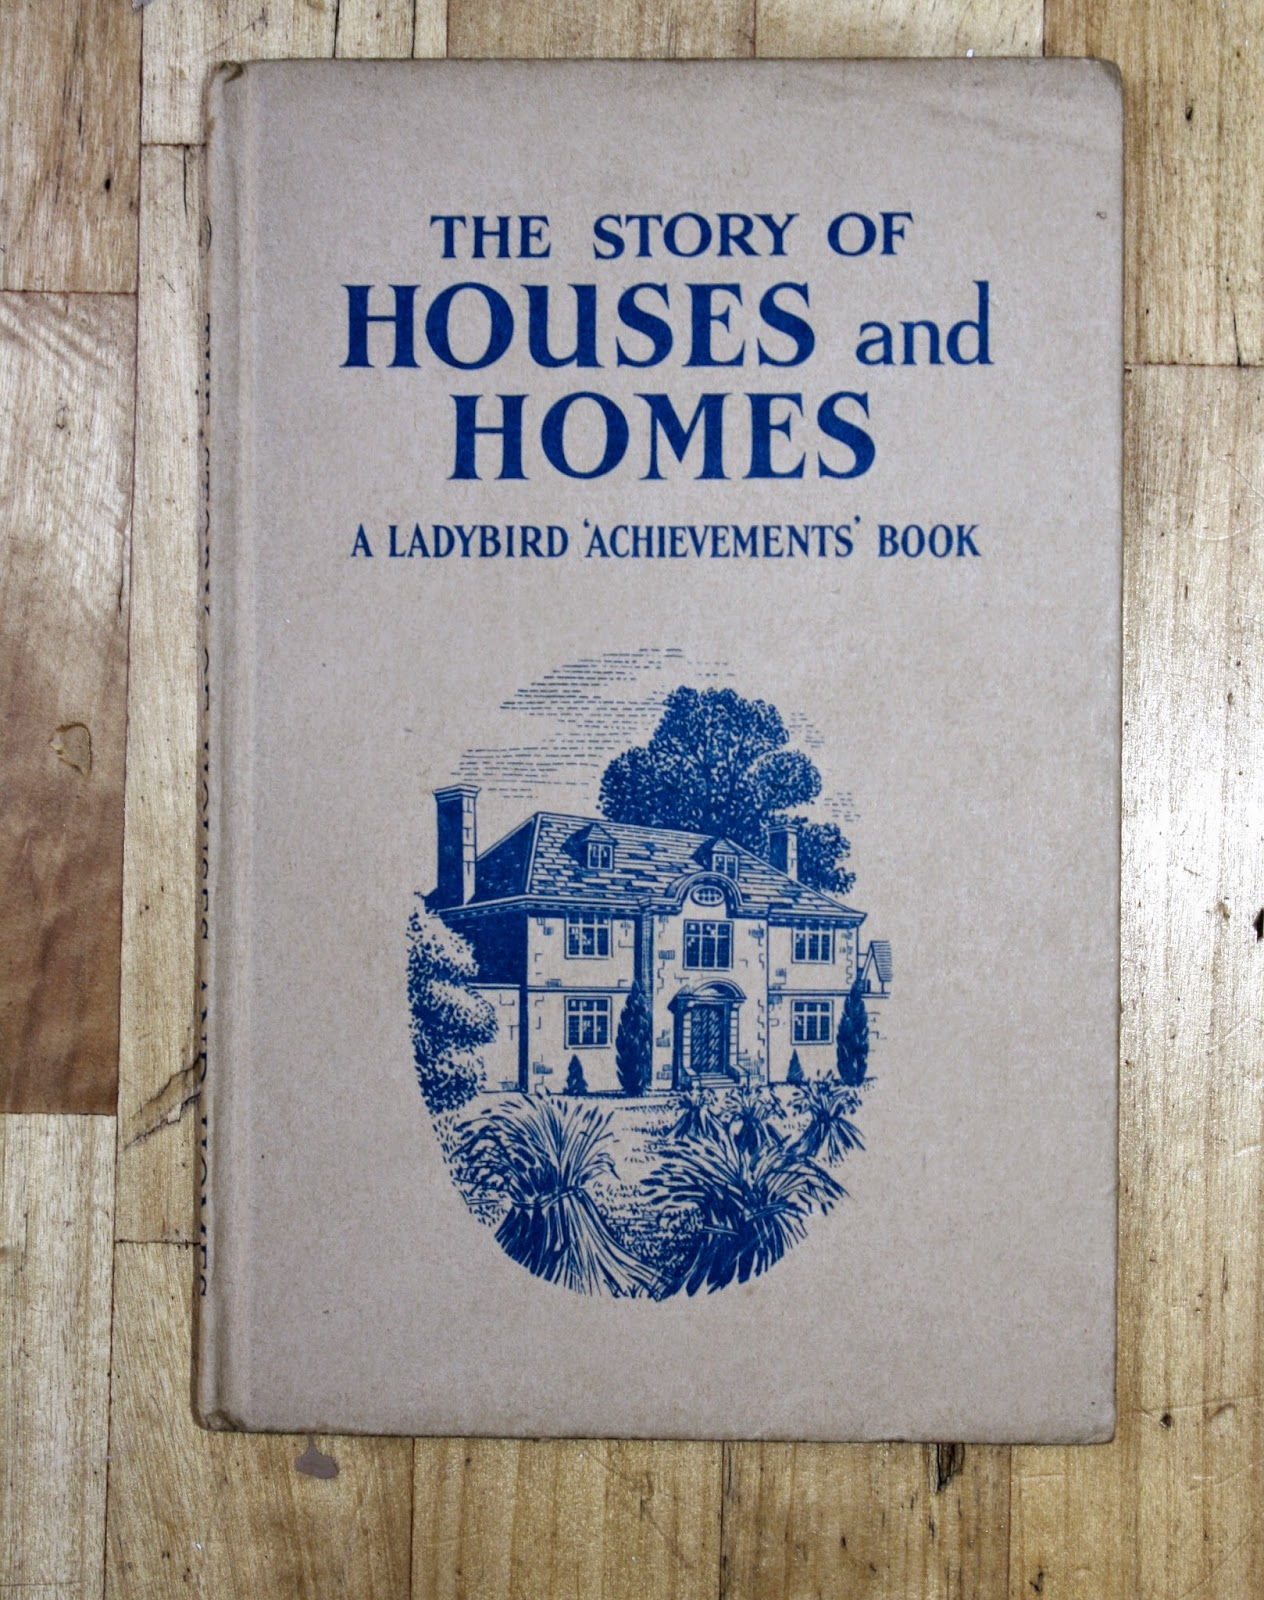 The Story of Houses & Homes